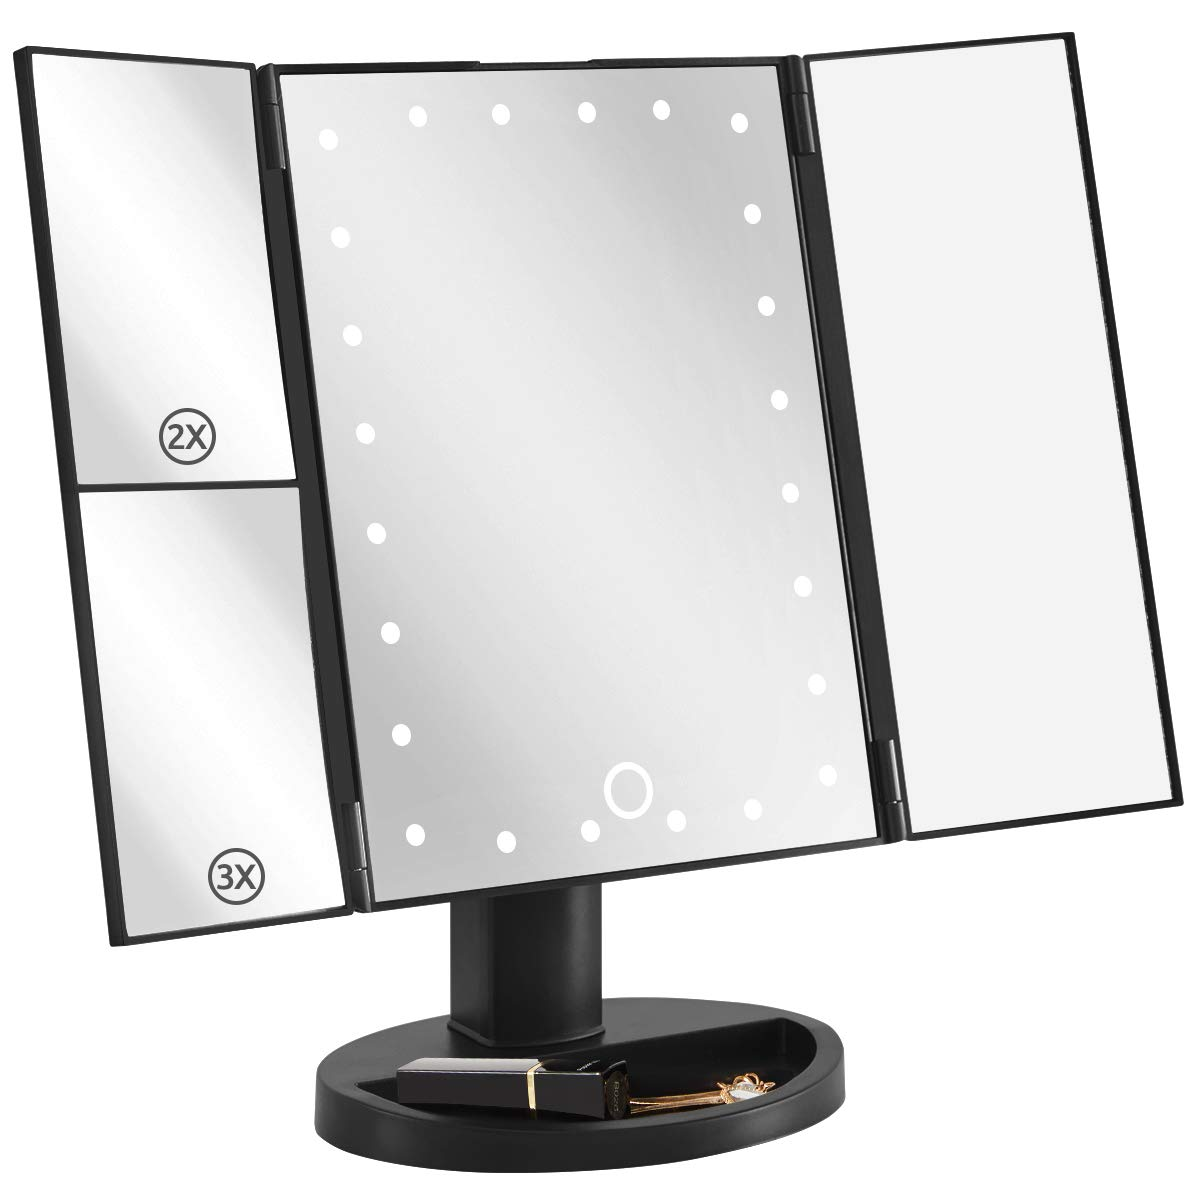 YOUDENOVA Makeup Vanity Mirror with Lights, Led Lighted Makeup Mirror with 3X/2X Magnifying and Dual Power Supply,Touch Screen Switch, 180 Degree Rotation, Portable Fold Cosmetic Mirror